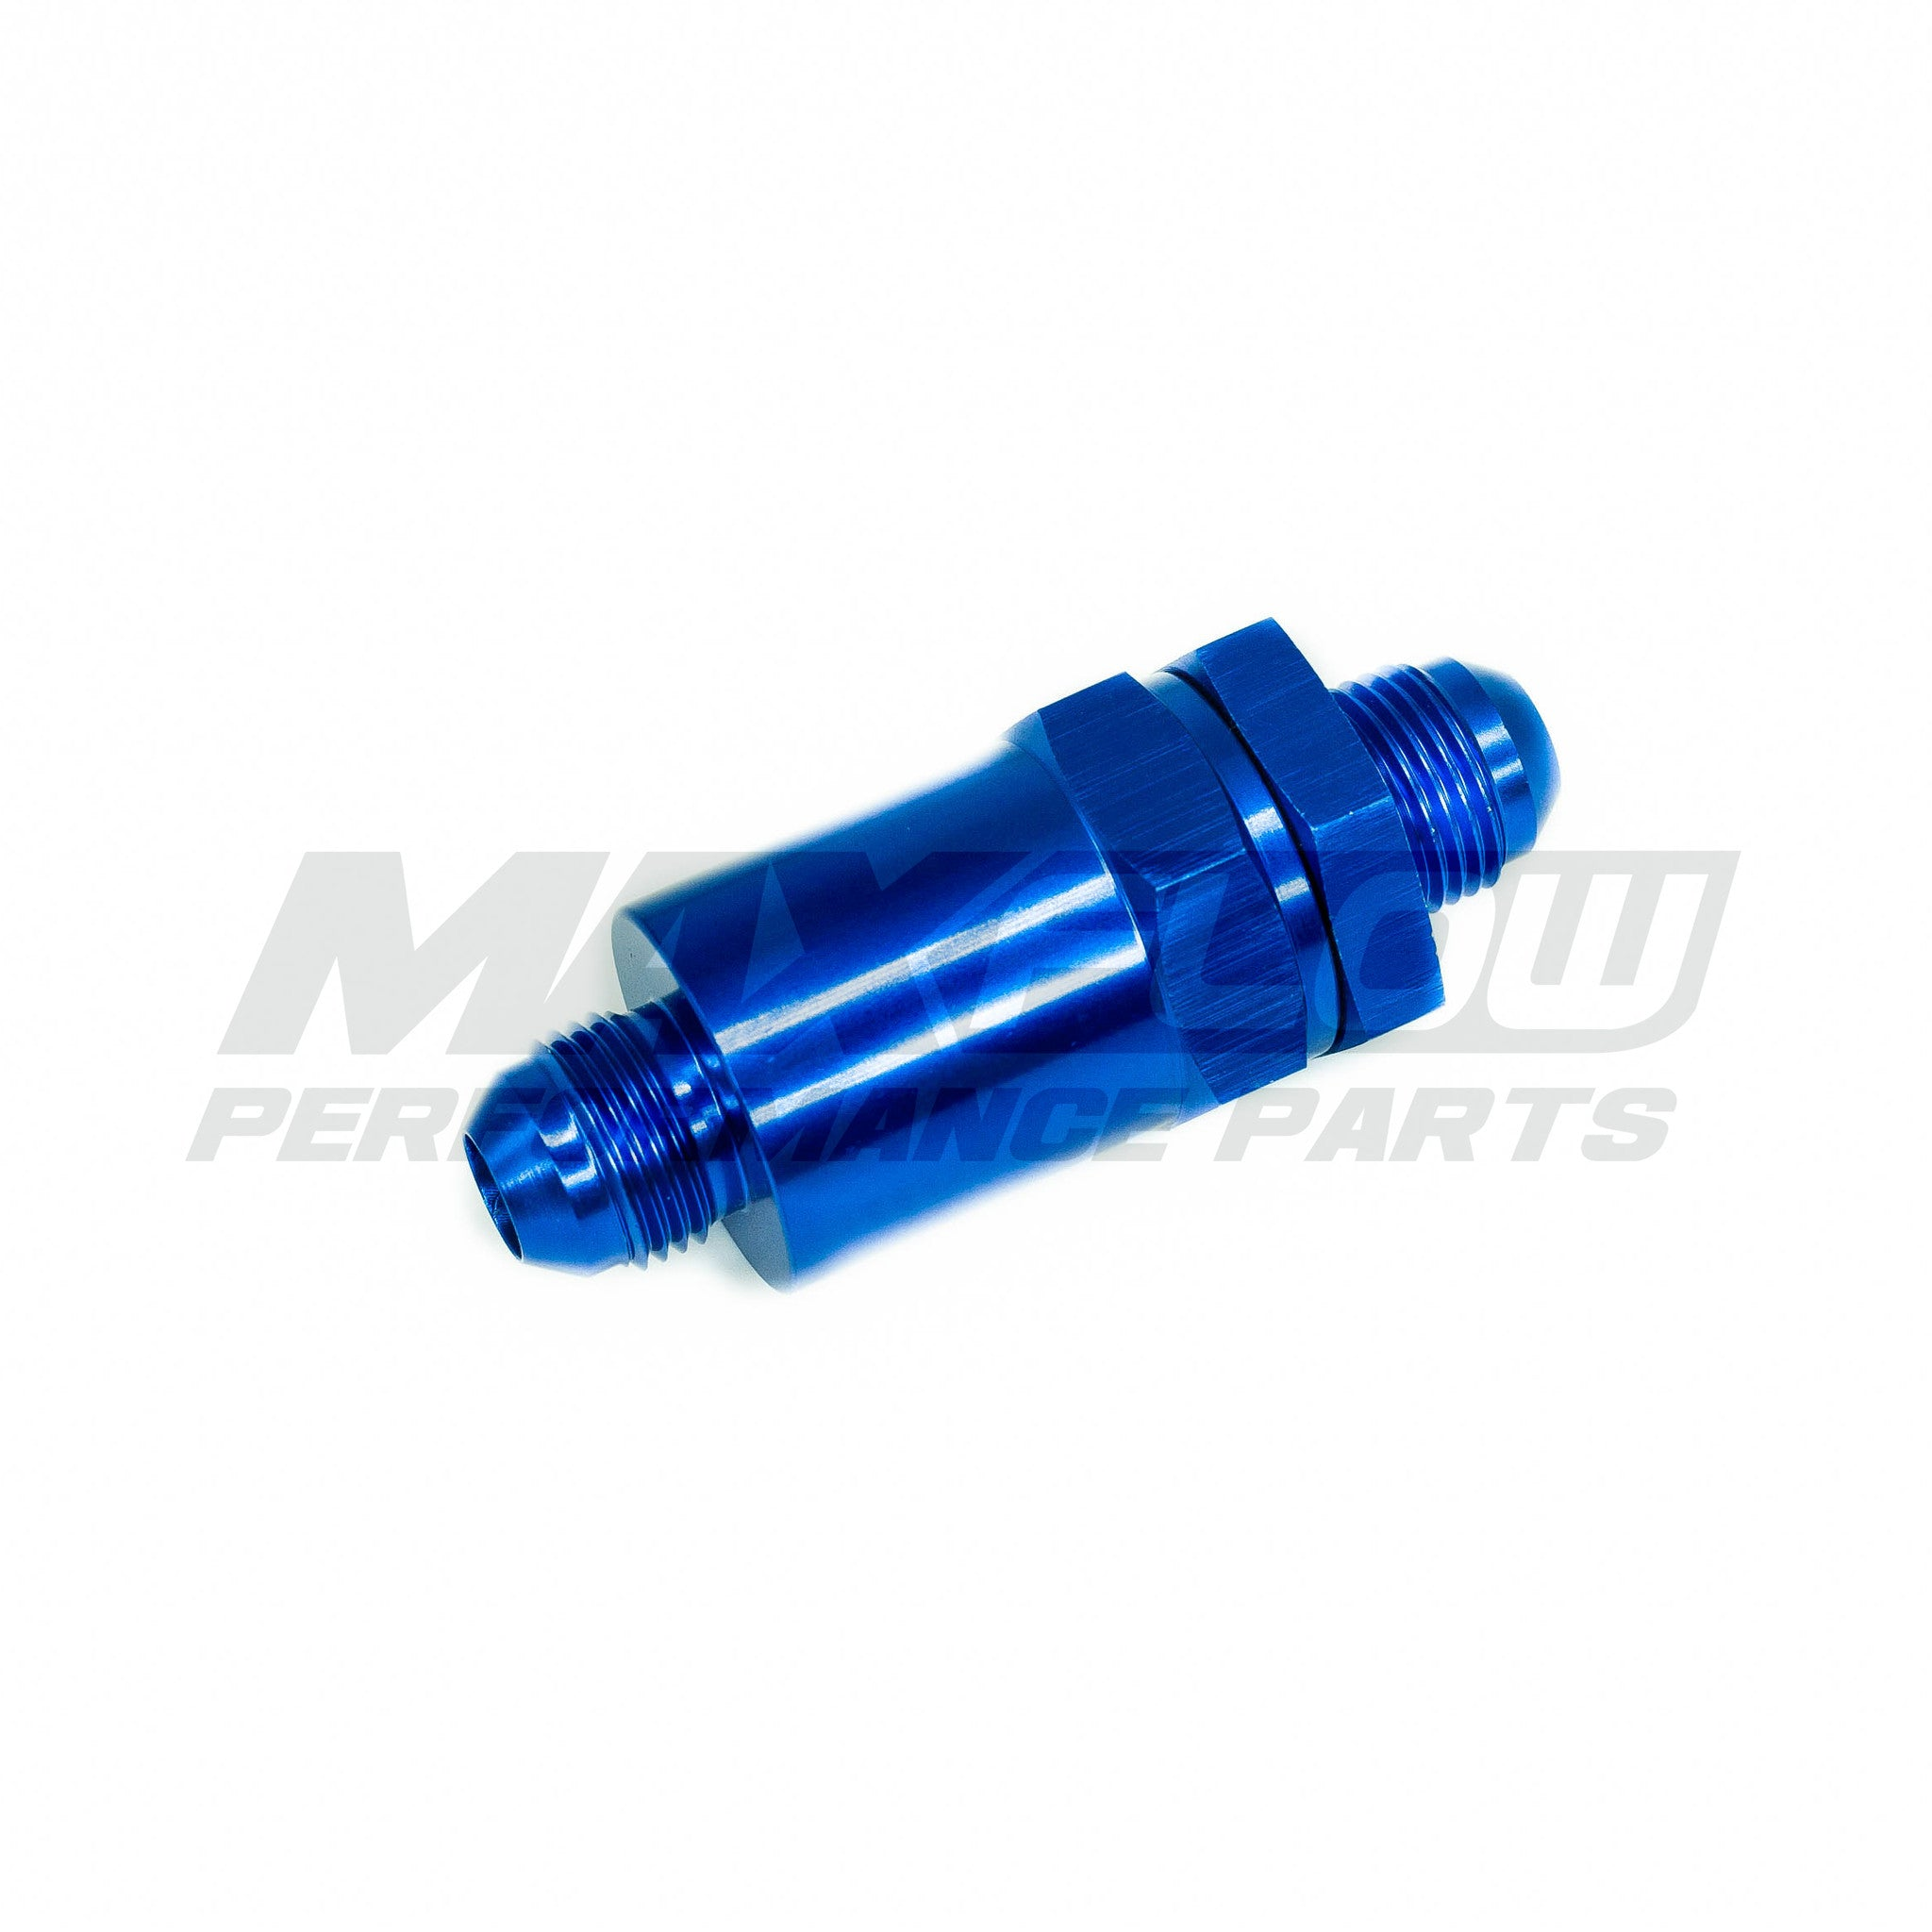 Fuel Filter Maxflow Performance Parts Motorcycle An Billet